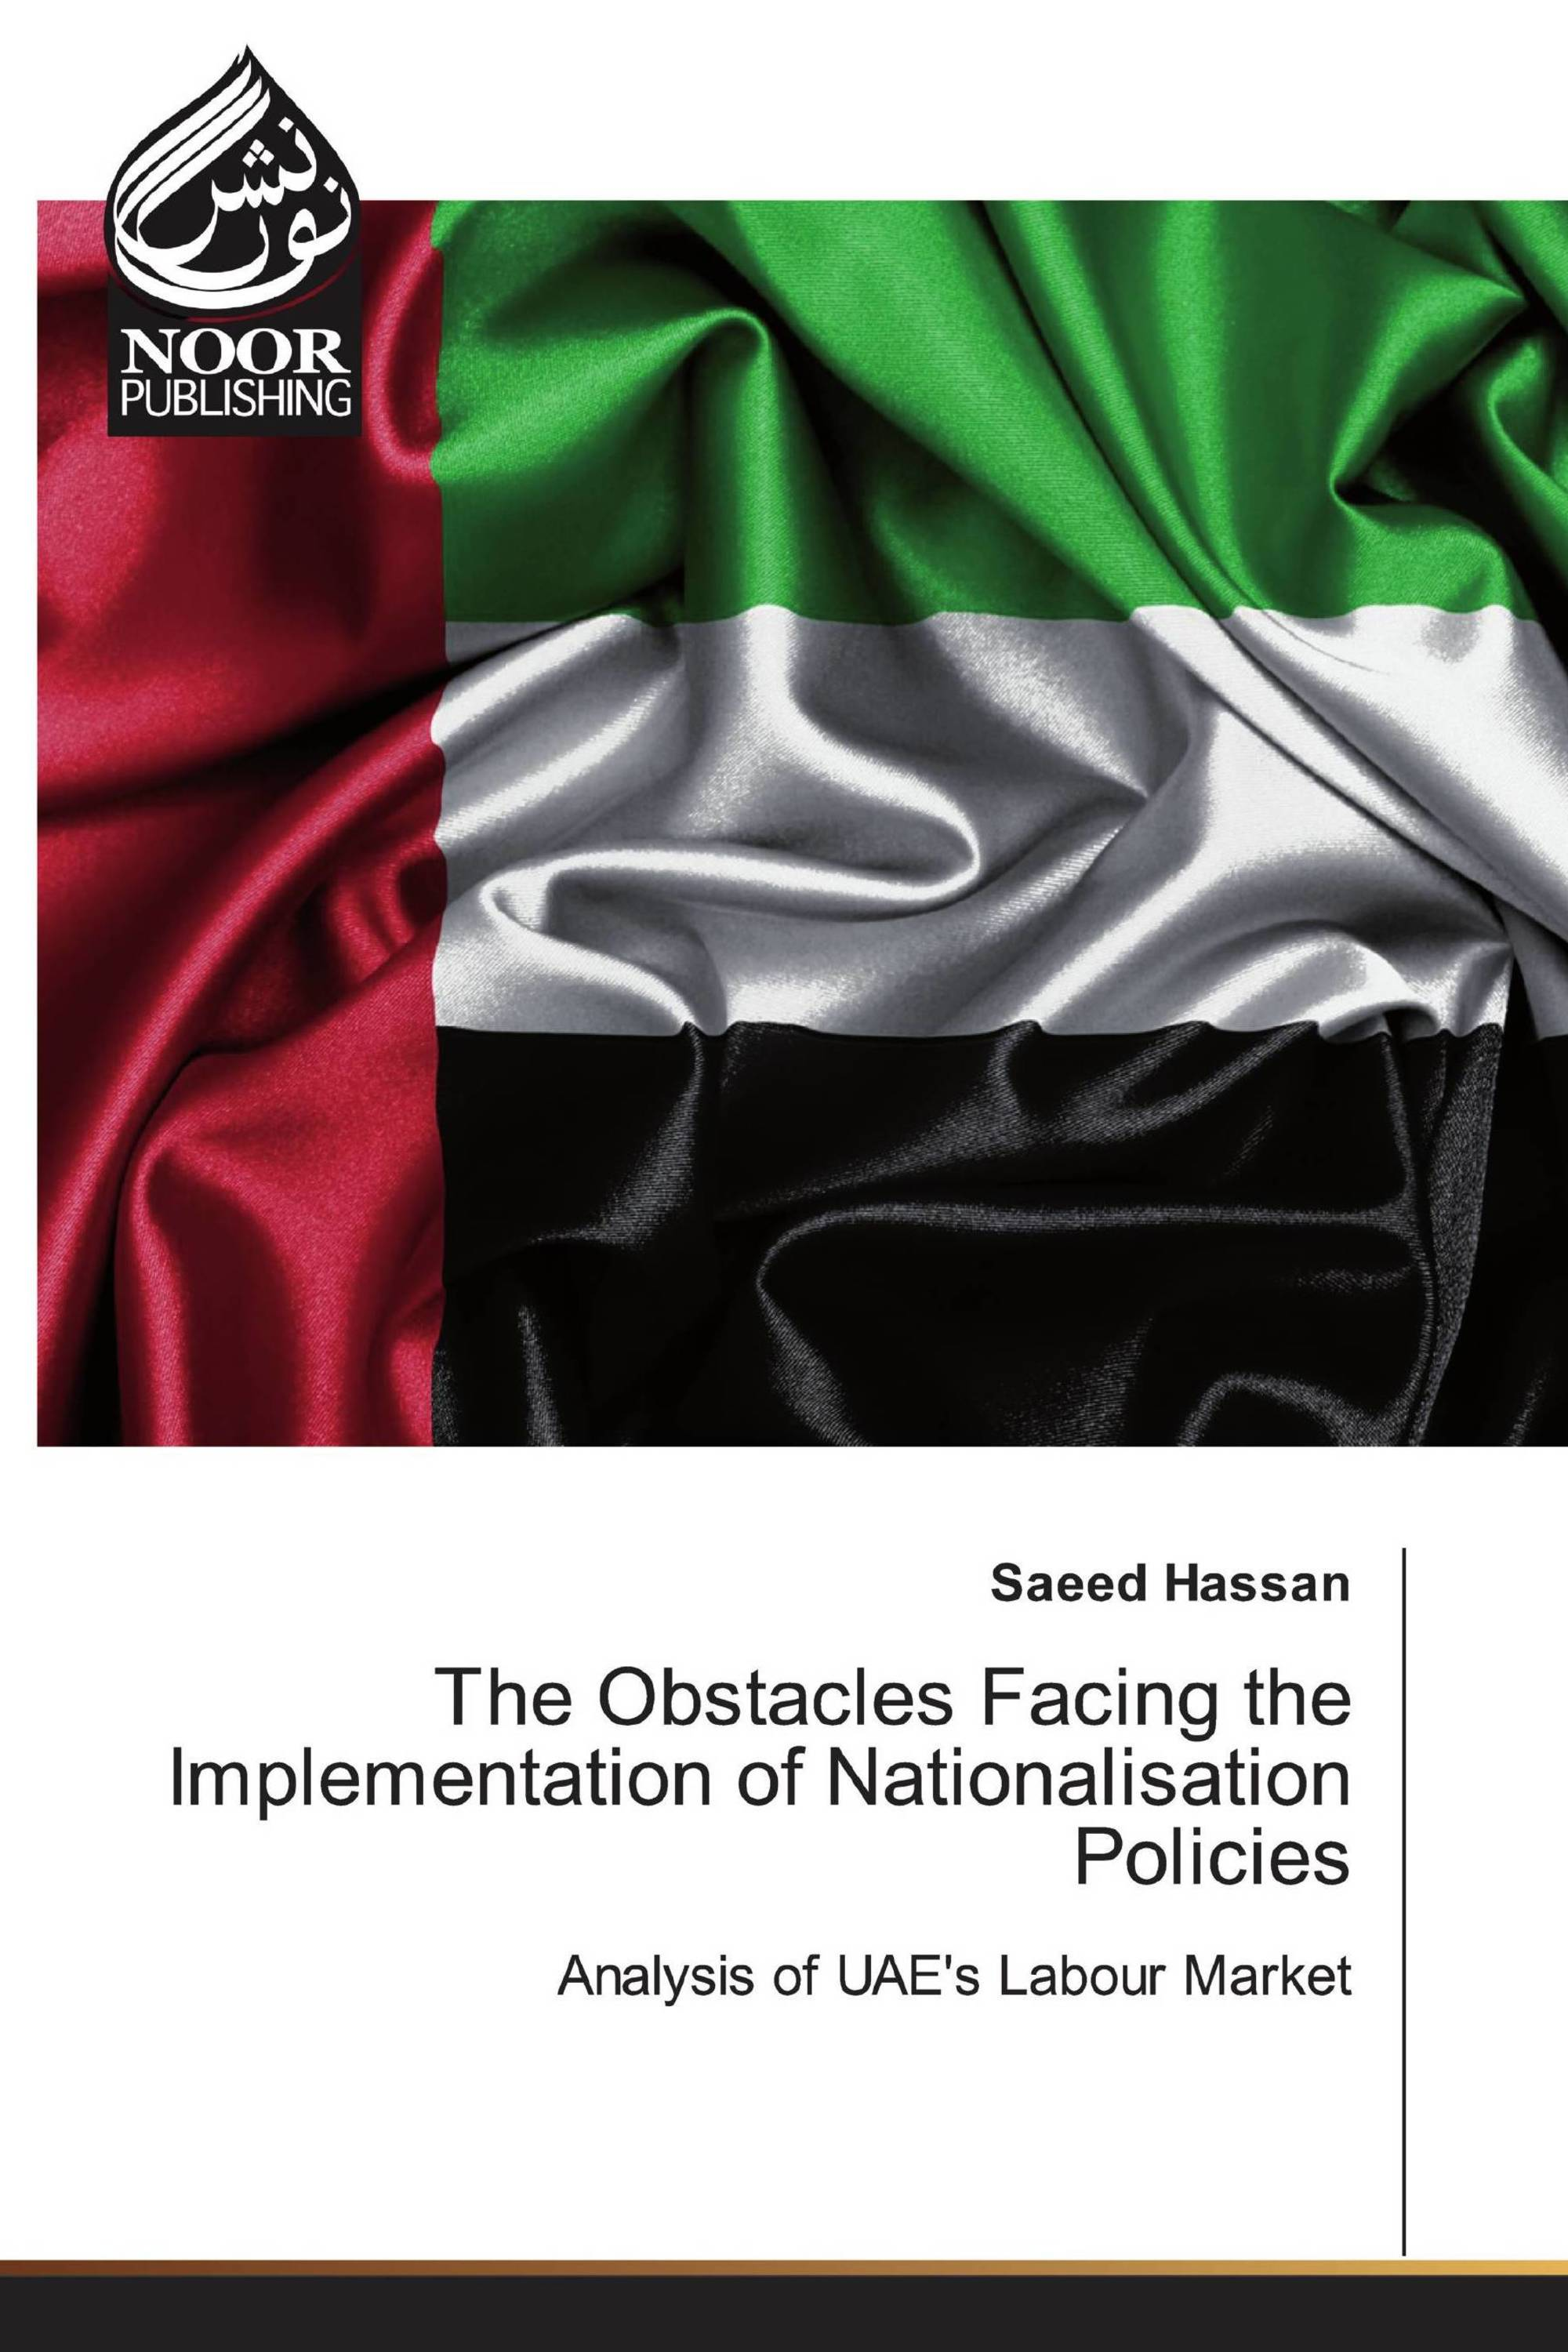 The Obstacles Facing the Implementation of Nationalisation Policies